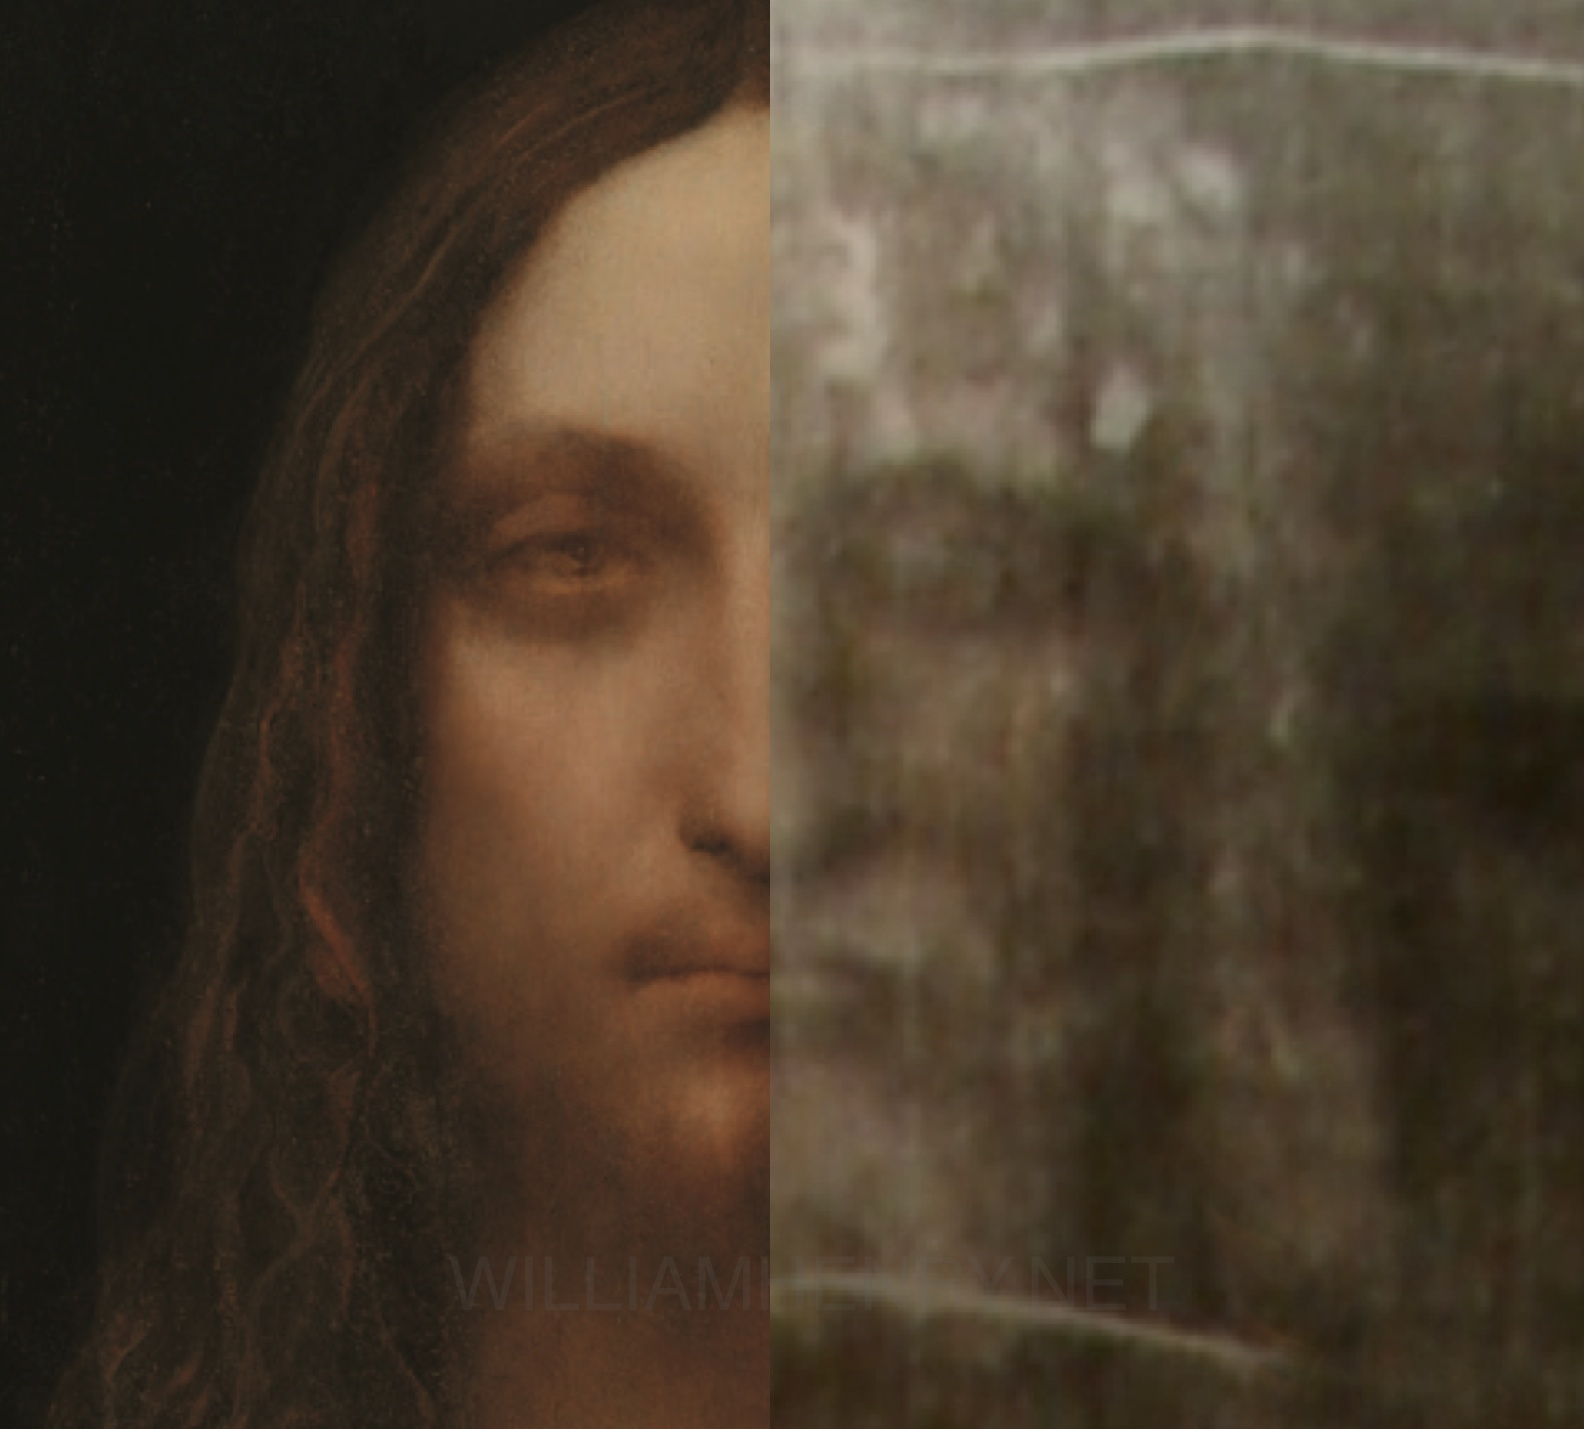 SEEING SALVATOR MUNDI : A MOMENT OF TRANSCENDENCE IN